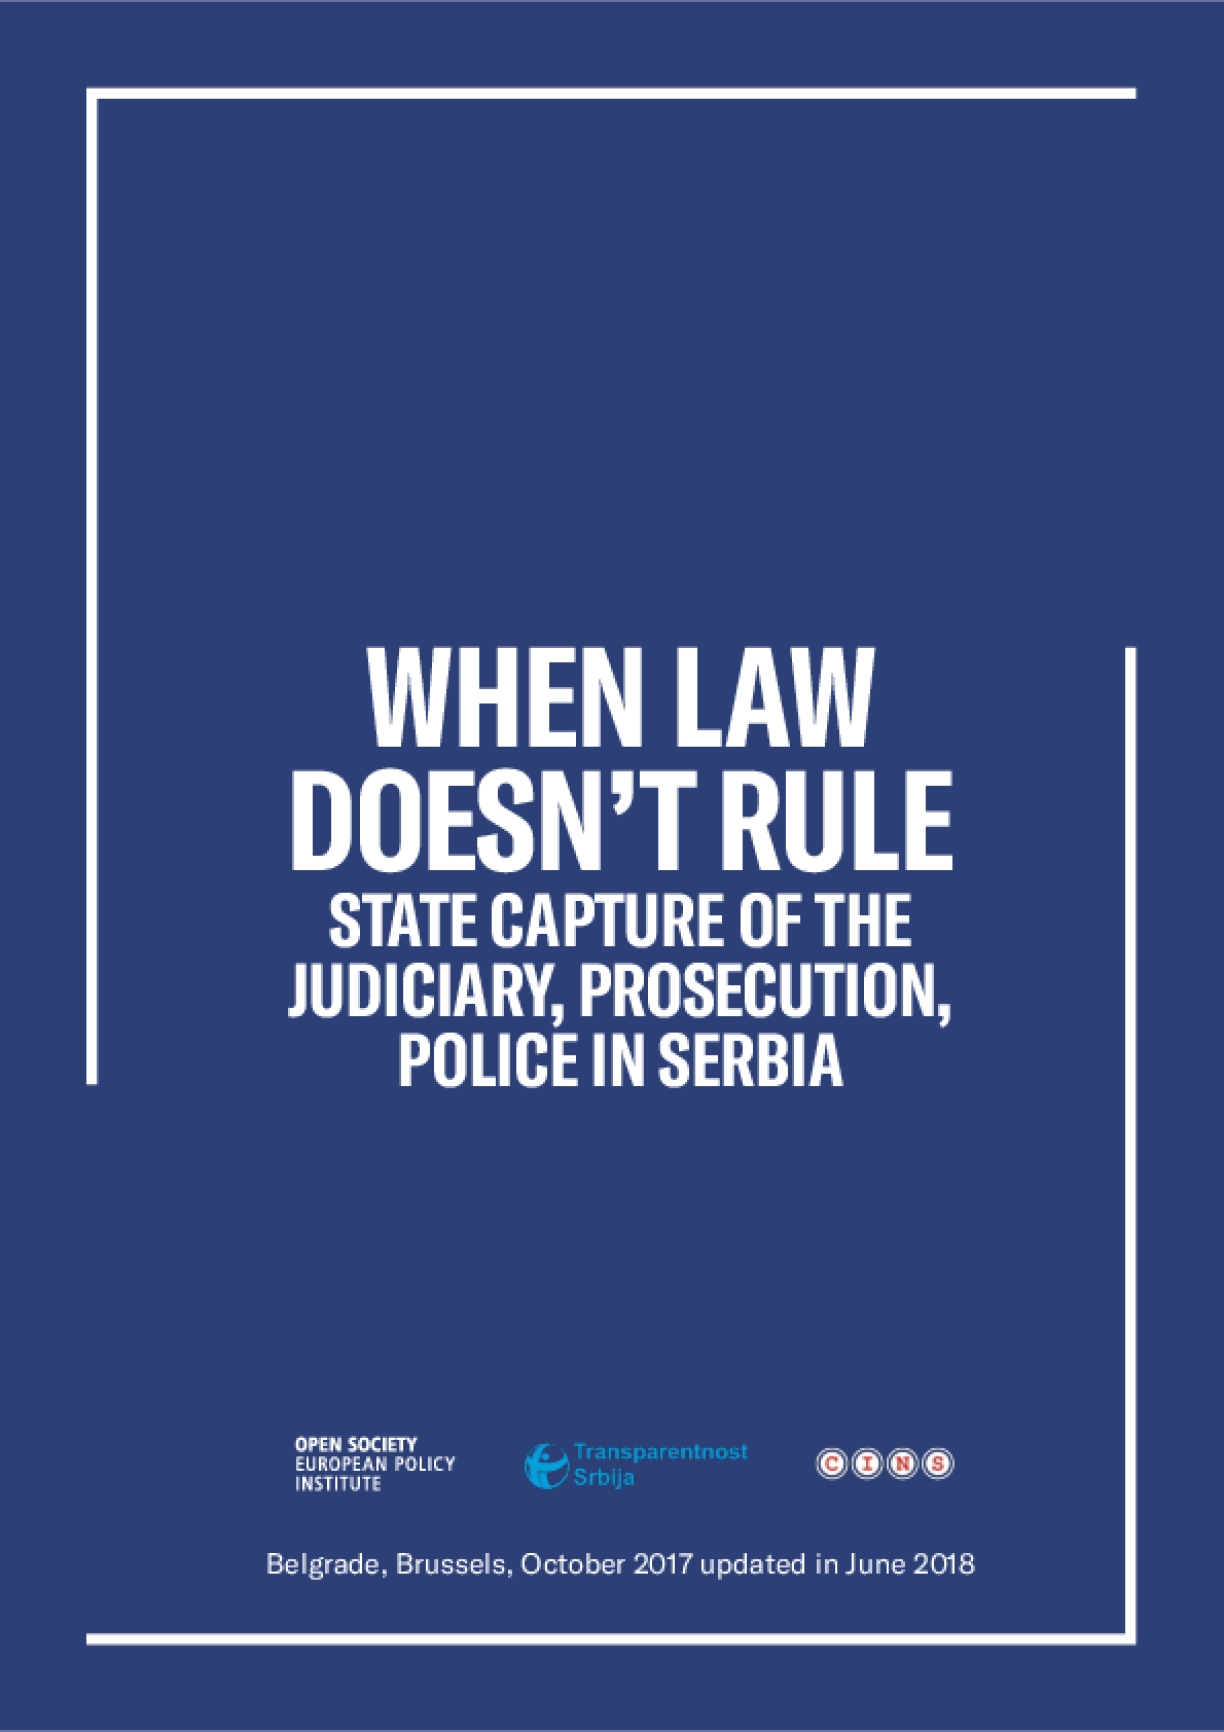 When Law Doesn't Rule: State Capture of the Judiciary, Prosecution, Police in Serbia